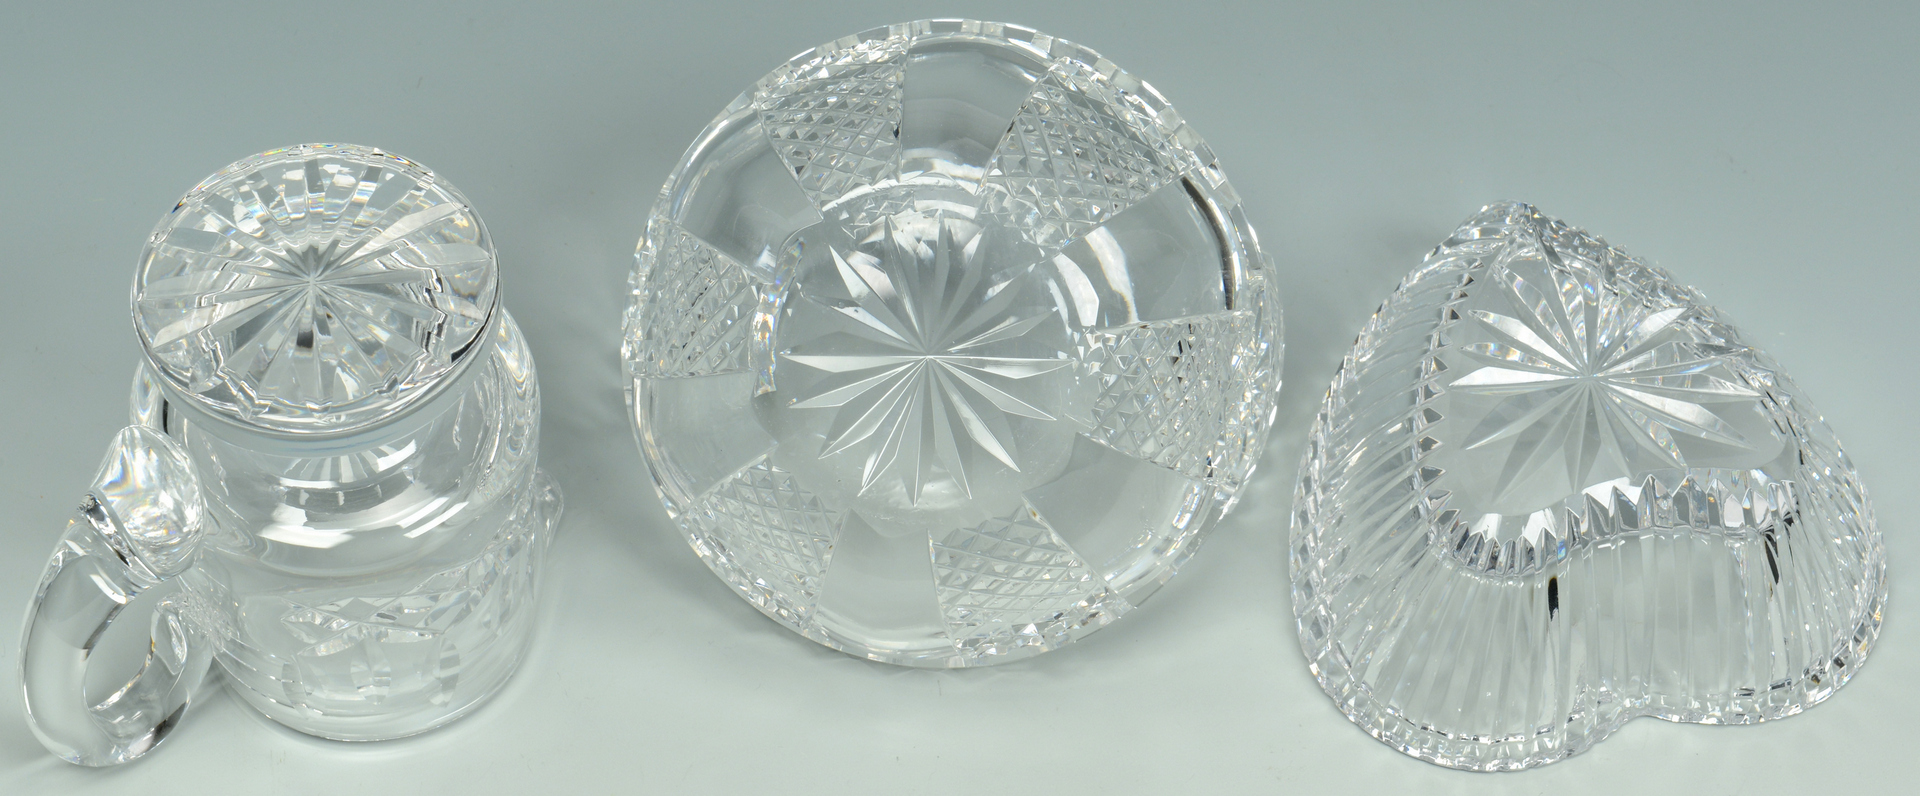 Lot 3088188: Grouping of Waterford Cut Crystal Table Items